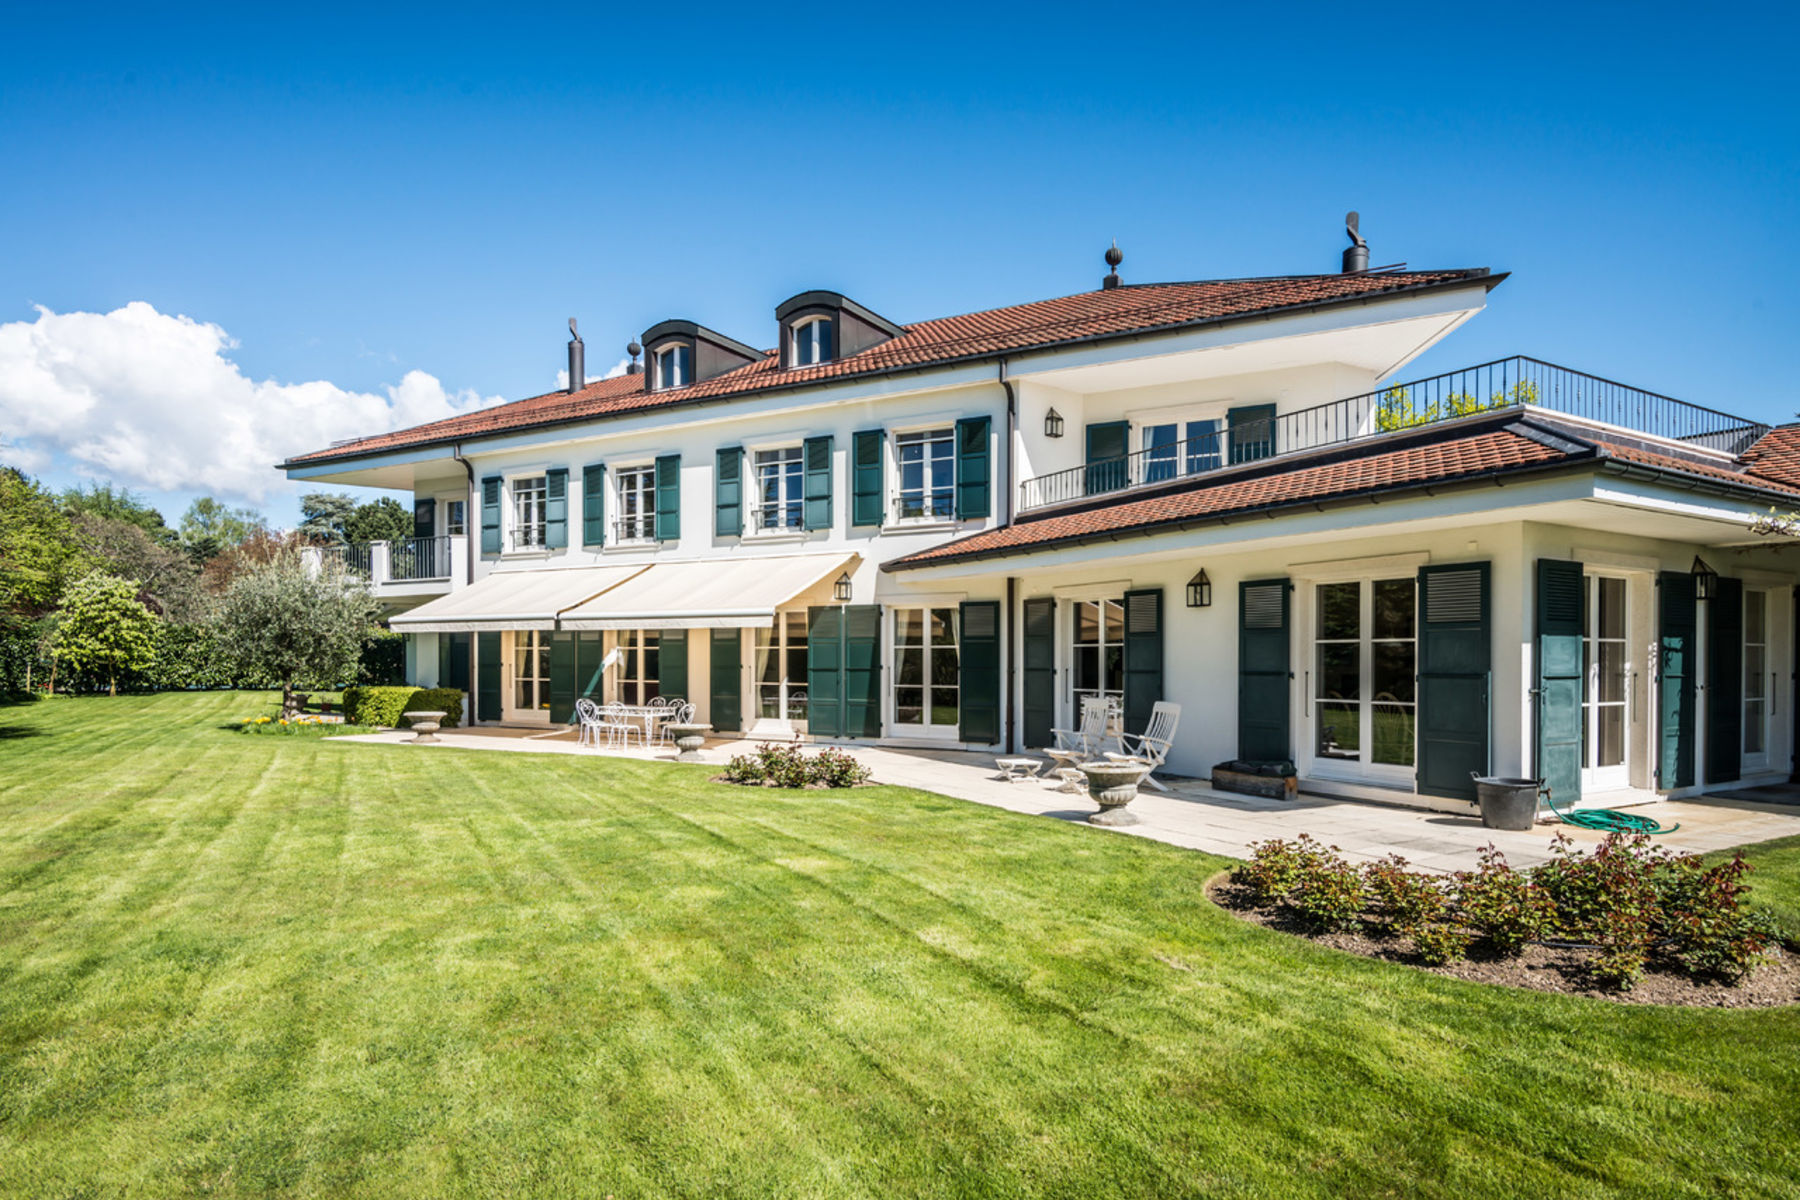 Single Family Home for Sale at Luxury detached villa with swimming pool Coppet Coppet, Vaud, 1296 Switzerland